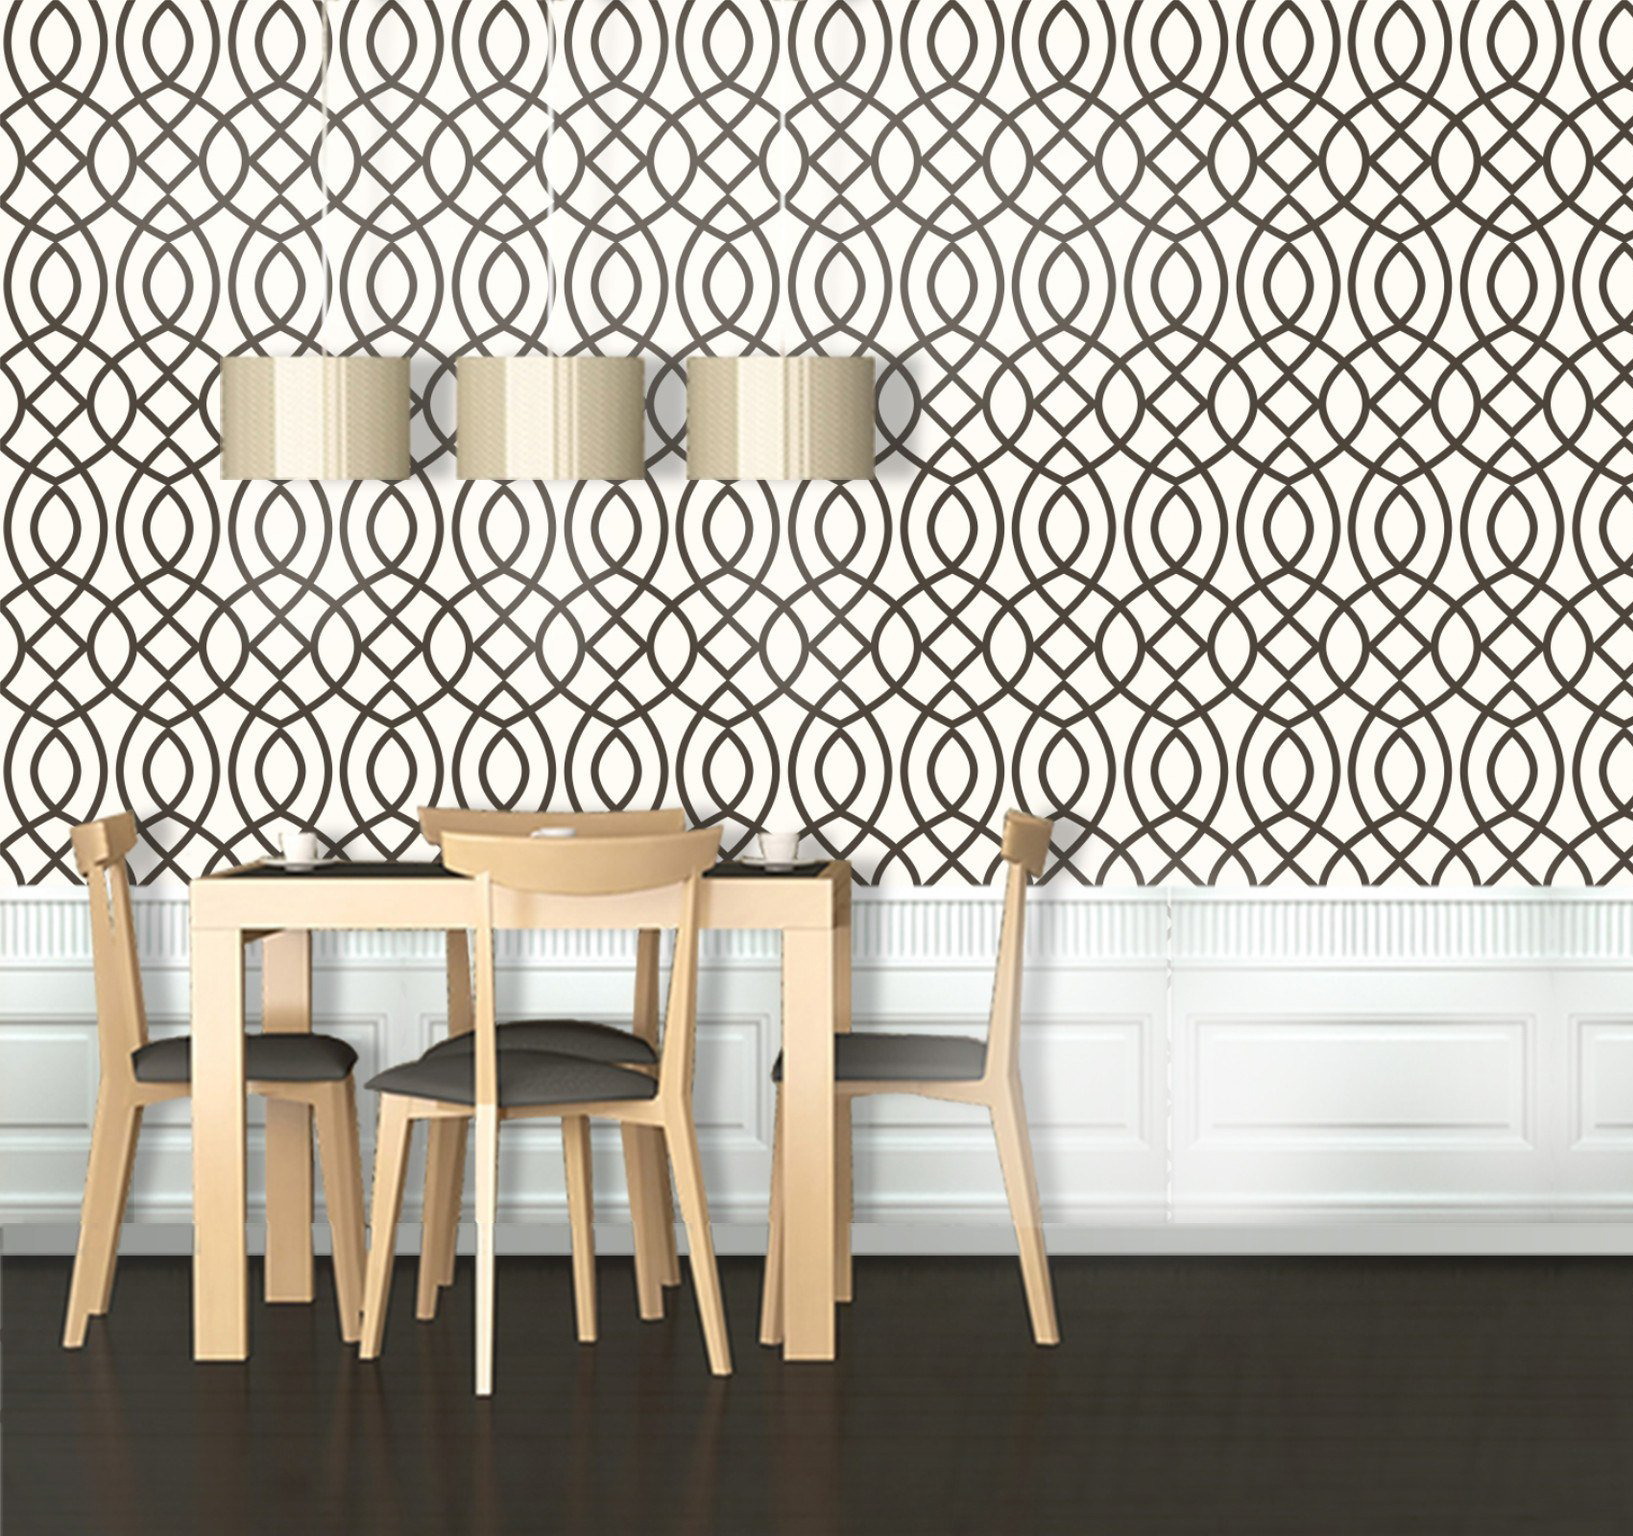 Free download Removable Wallpaper Sources for Renters ...